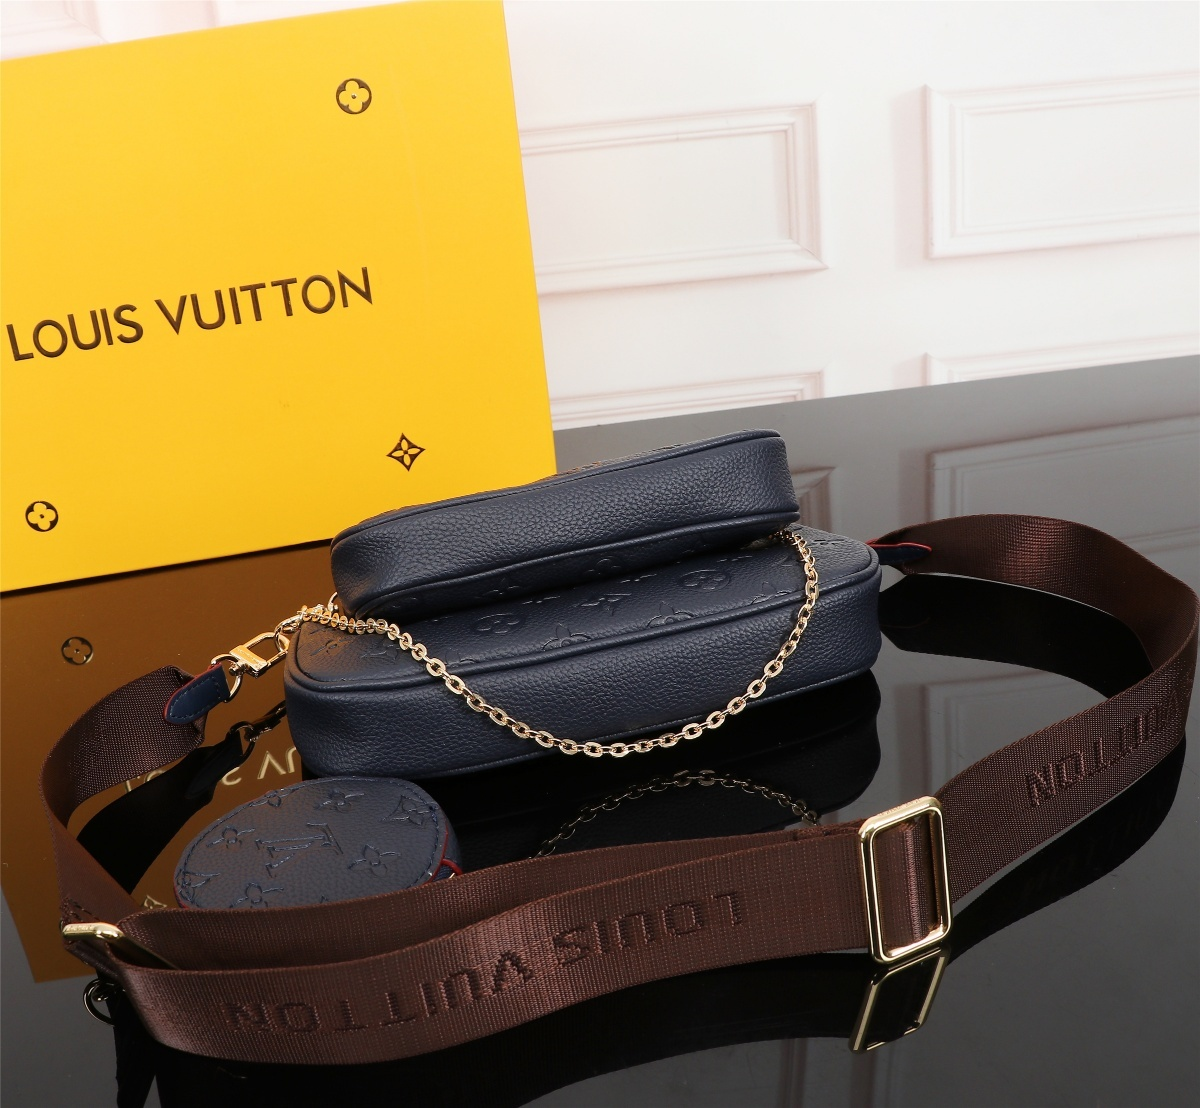 Louis Vuitton Сумка 215685